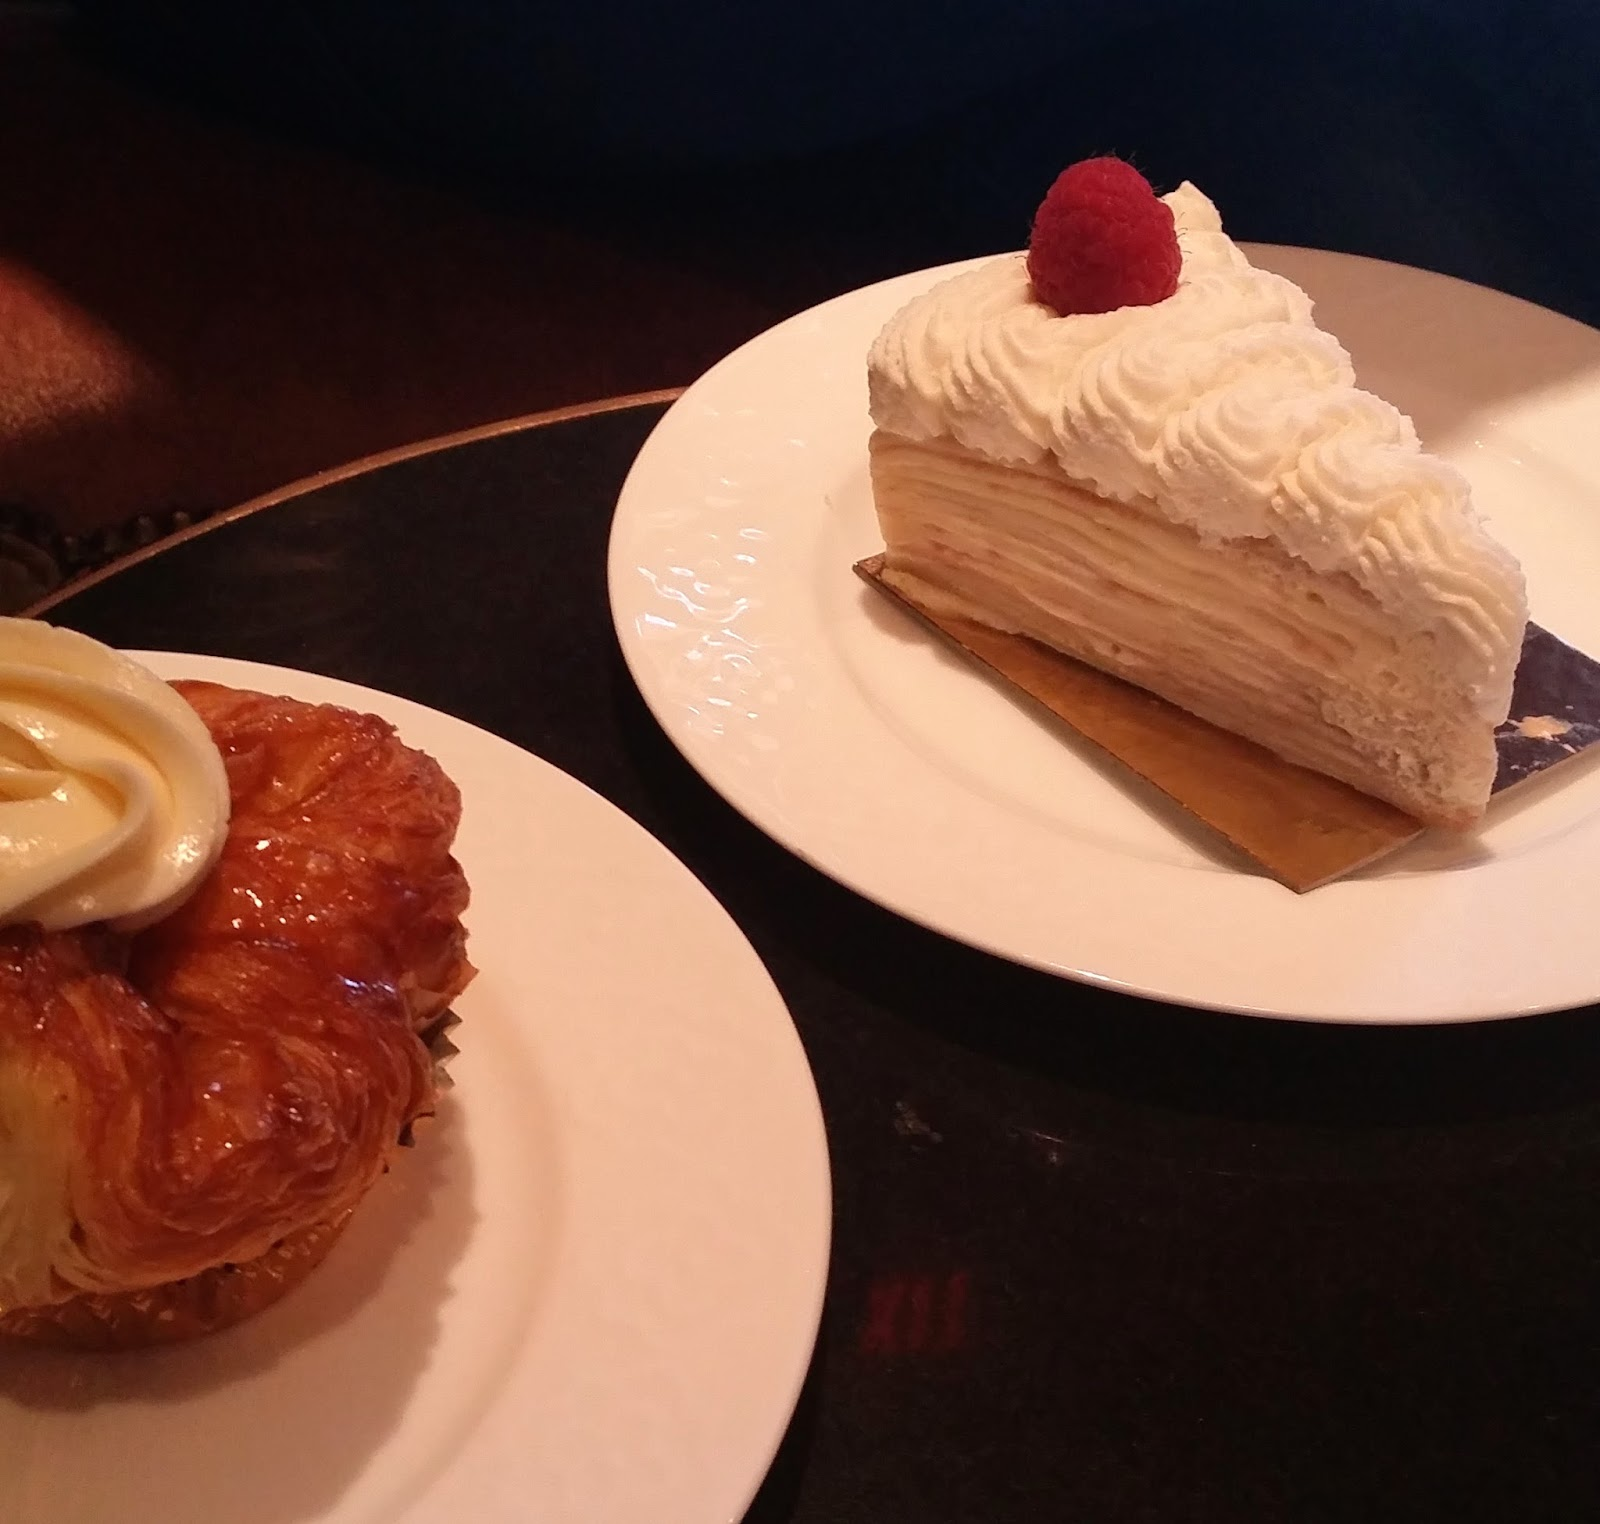 Sophia Eats August 2015 Mille Shopia Top Creme I Loved Their Crepe Cake But J Preferred The Without Pasty Cream On We Were Still Glad That None Of Desserts Was Overwhelmingly